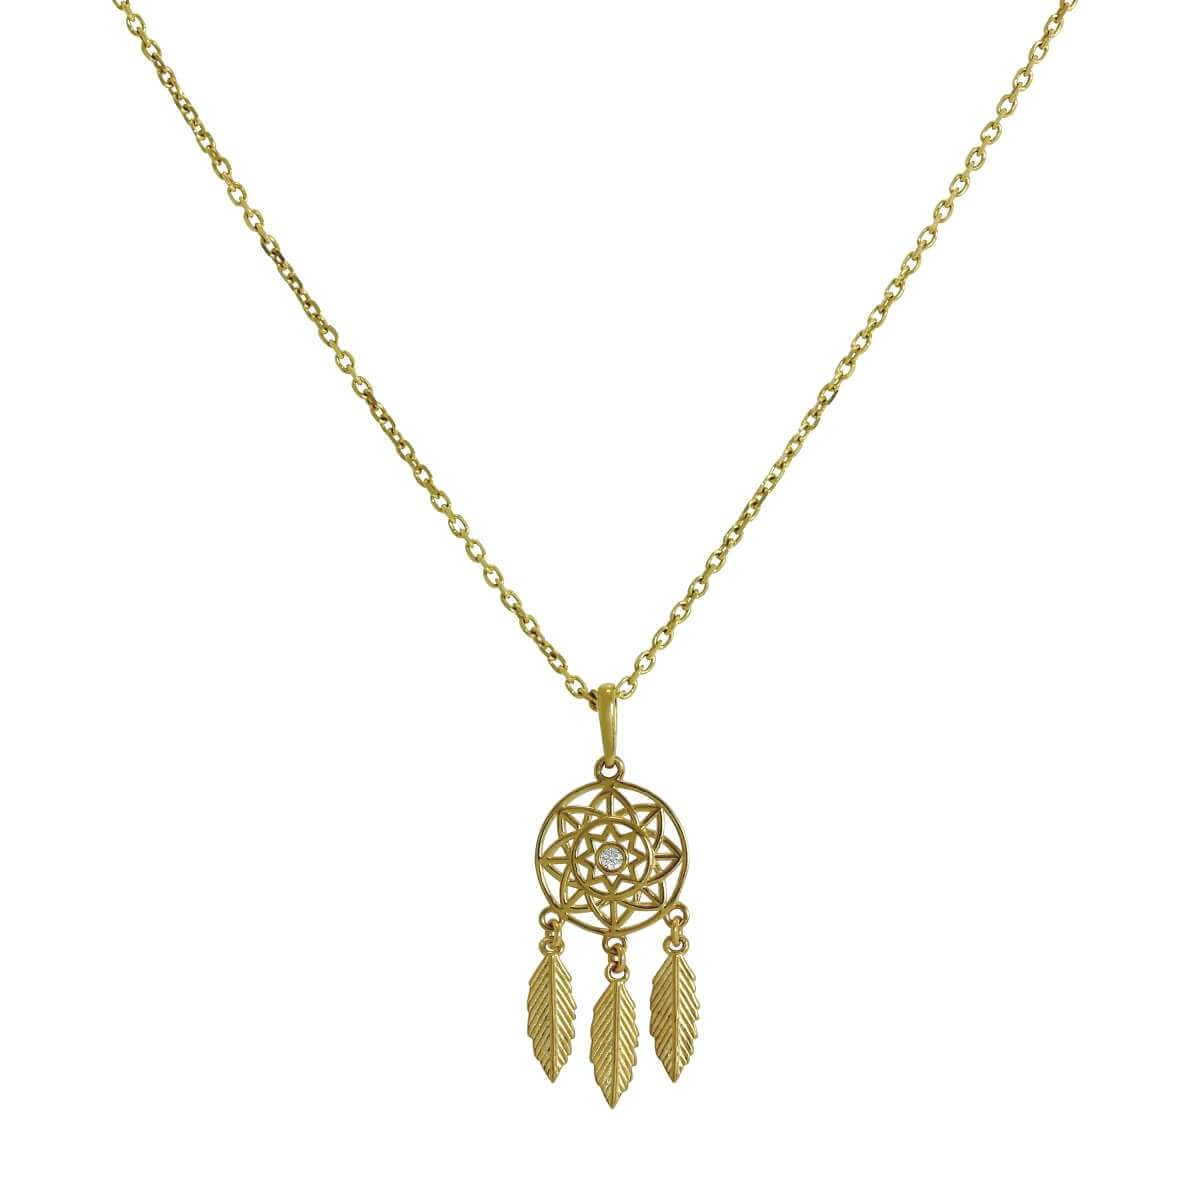 9ct Gold & Clear CZ Crystal Dreamcatcher Pendant Necklace 16 - 20 Inches